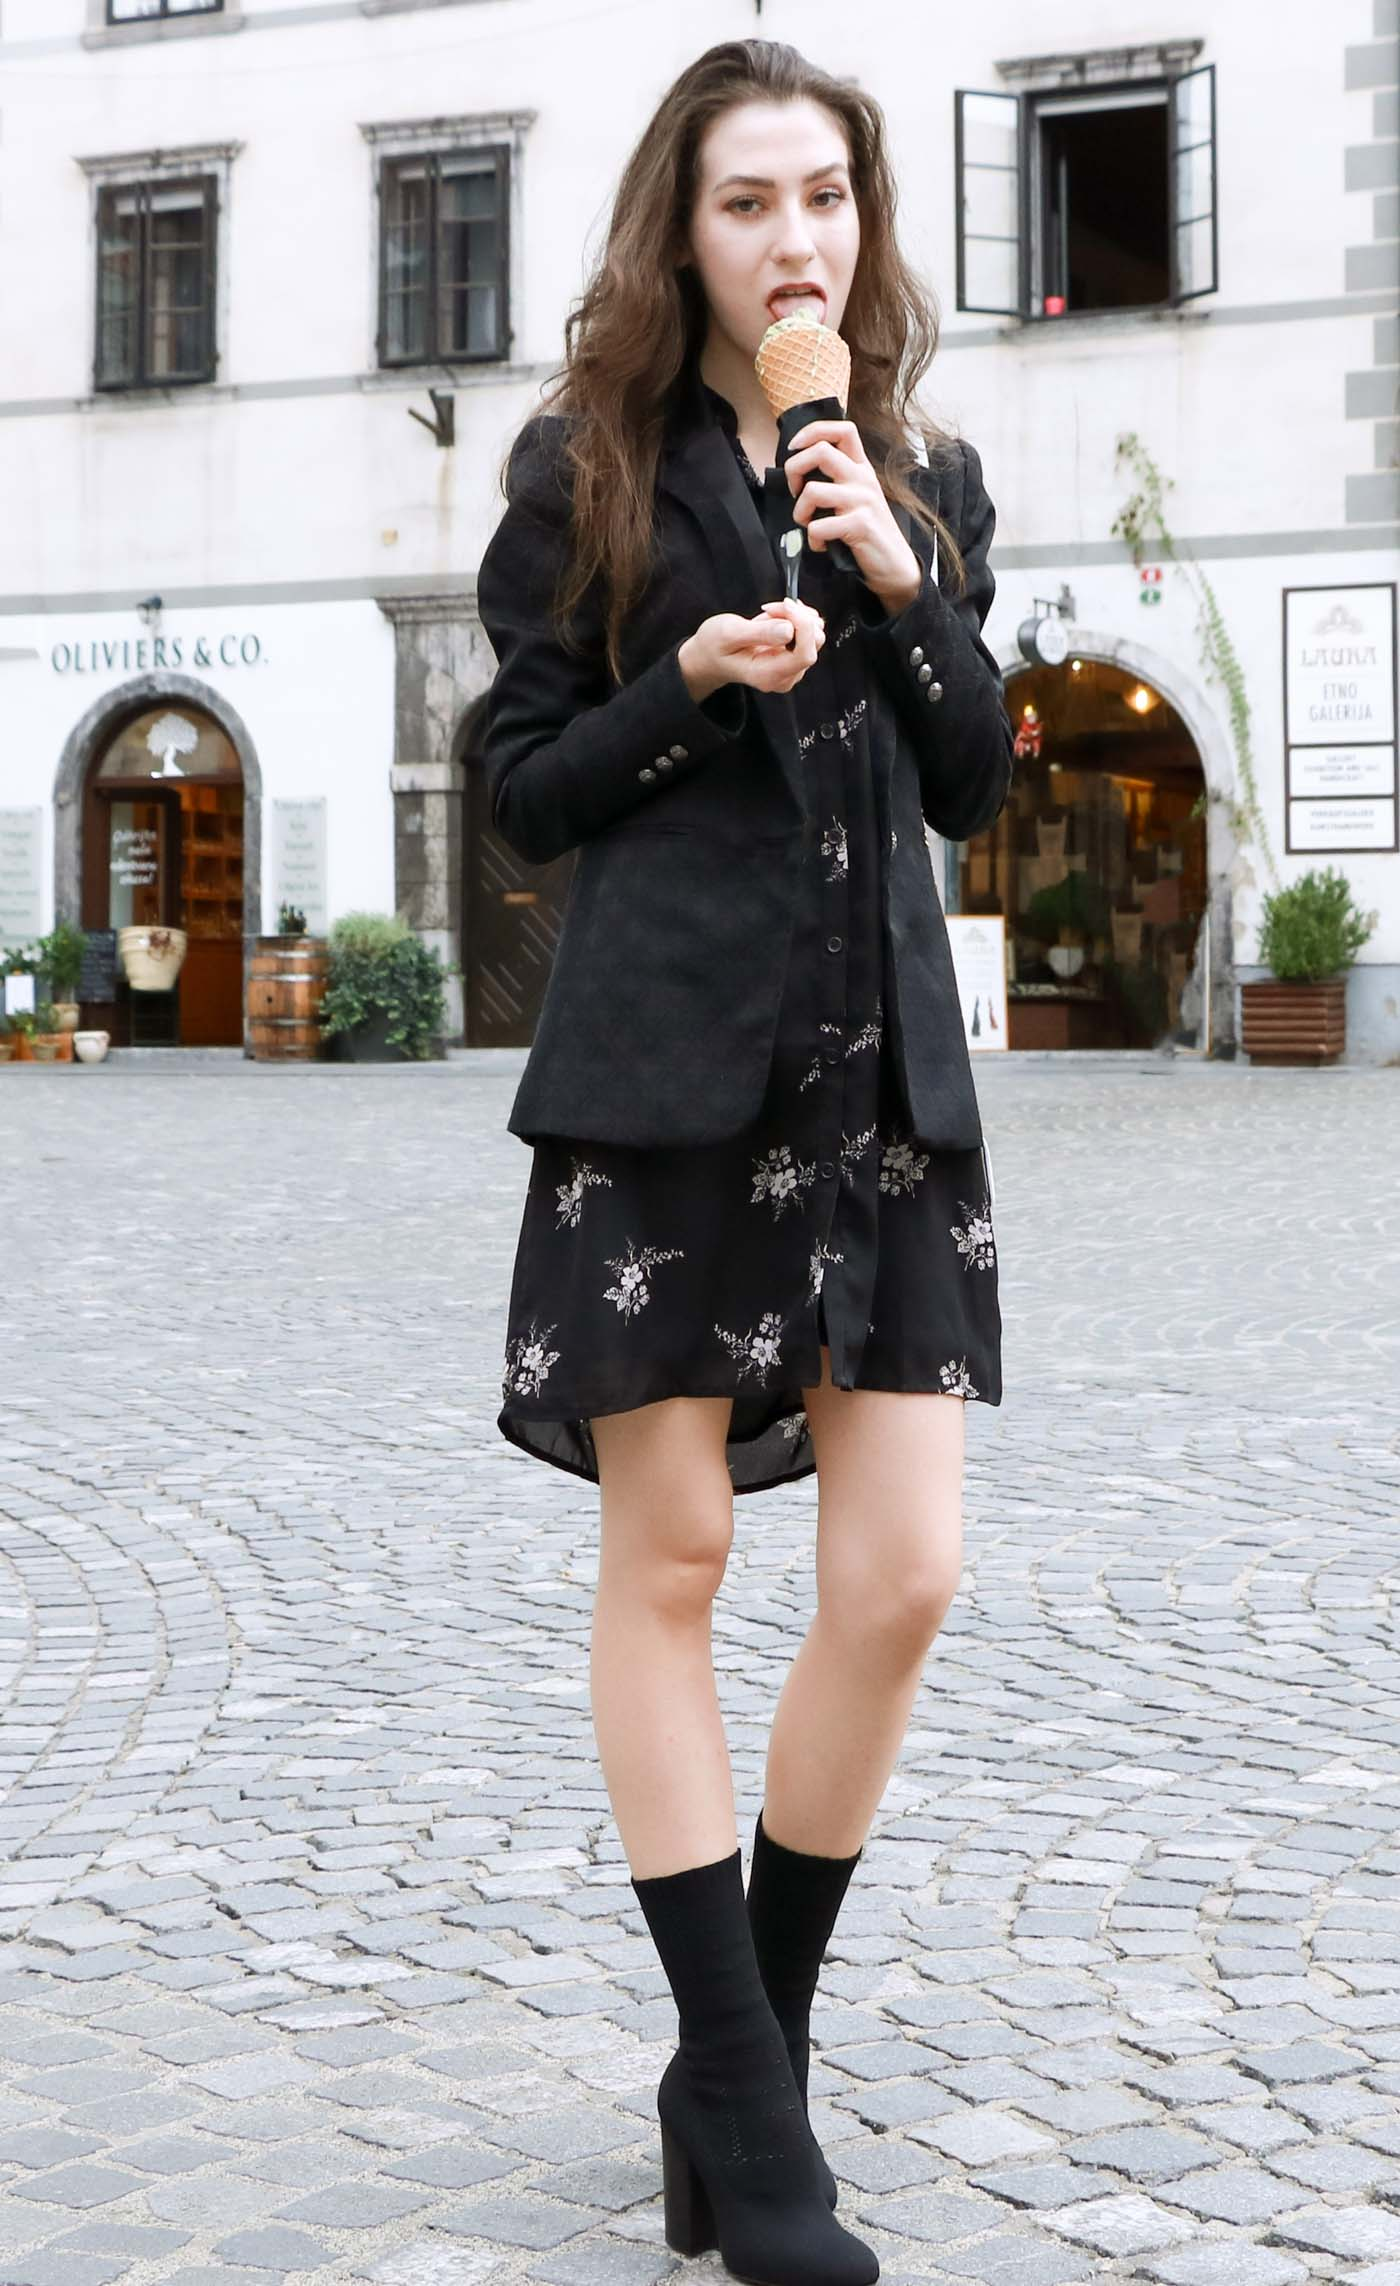 Fashion Blogger Veronika Lipar of Brunette from Wall wearing dark floral shirt dress, black jacquard boyfriend blazer, black sock ankle boots, white shoulder bag, eating ice cream on the street